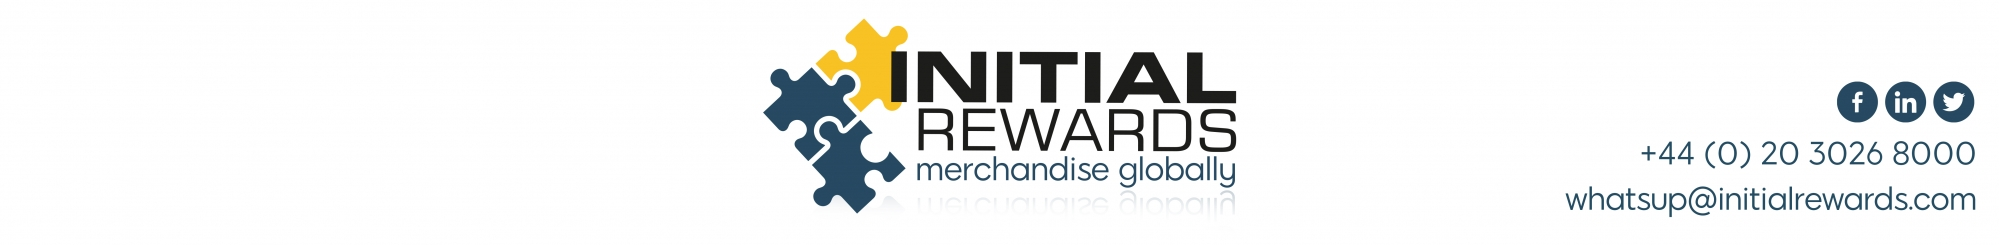 Initial Rewards Ltd